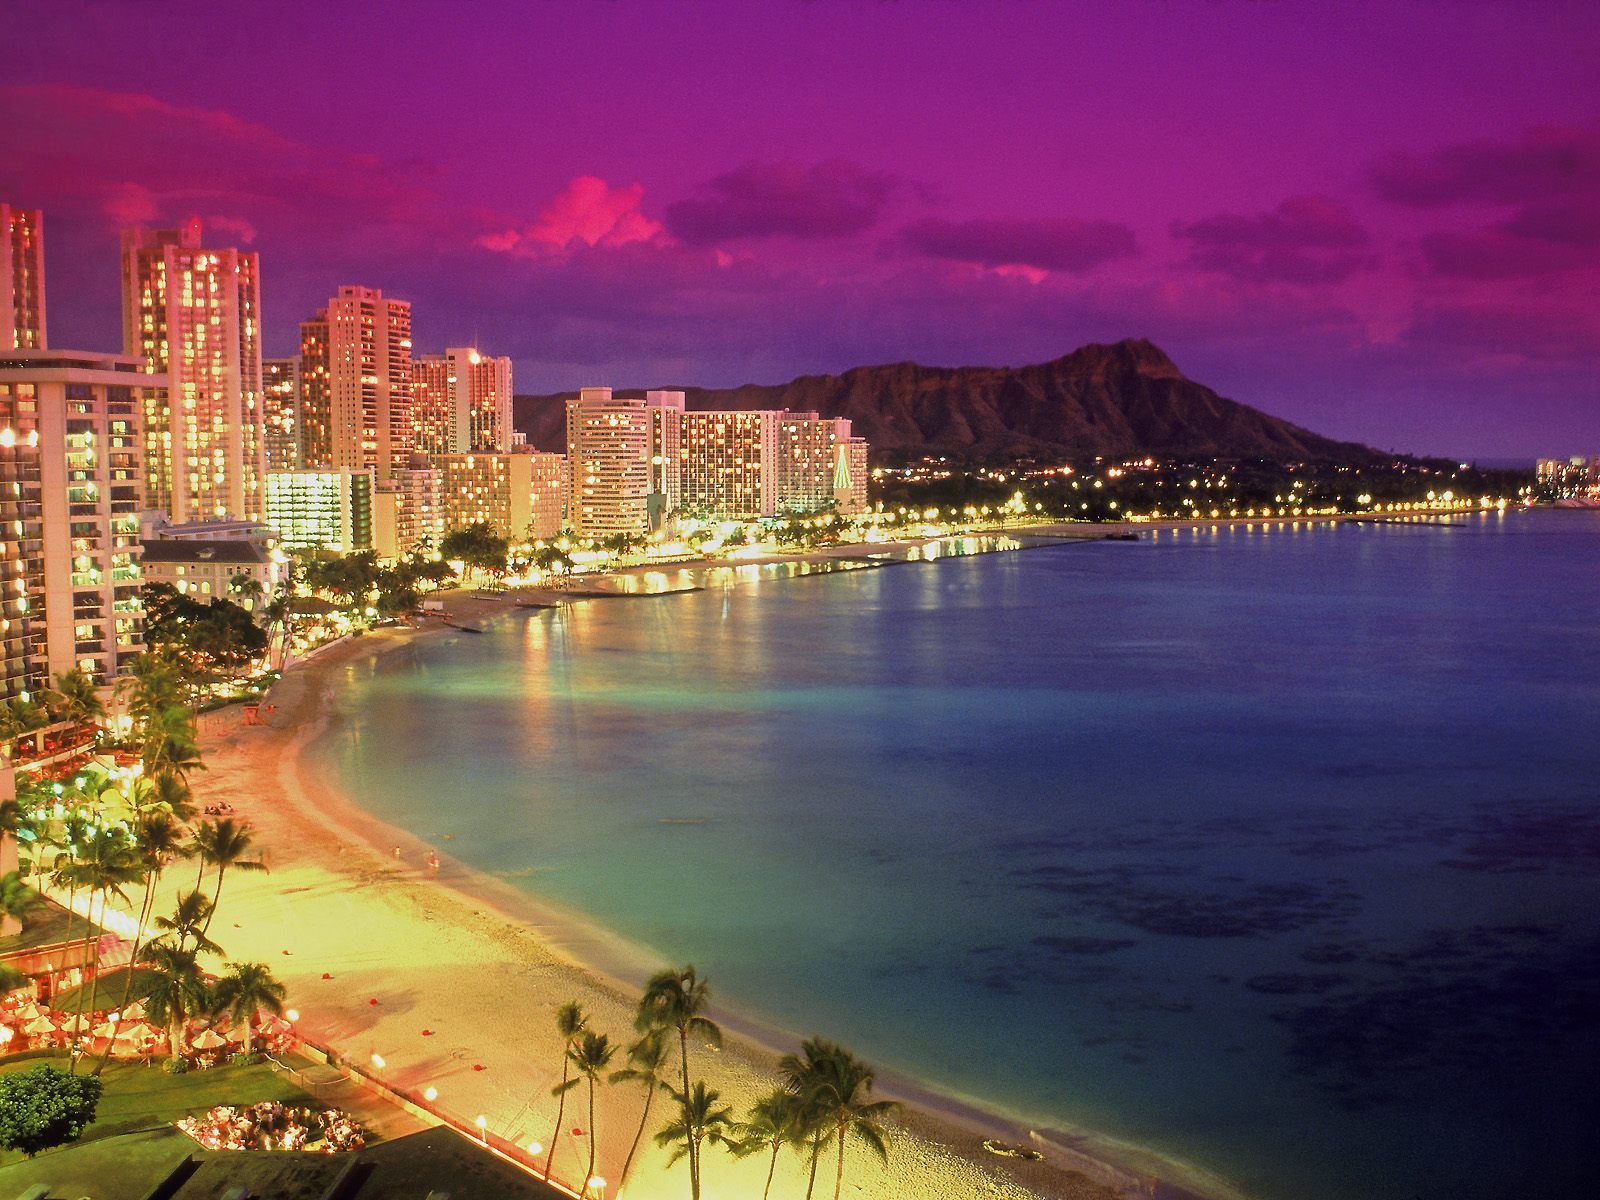 Waikiki at Dusk, Hawaii